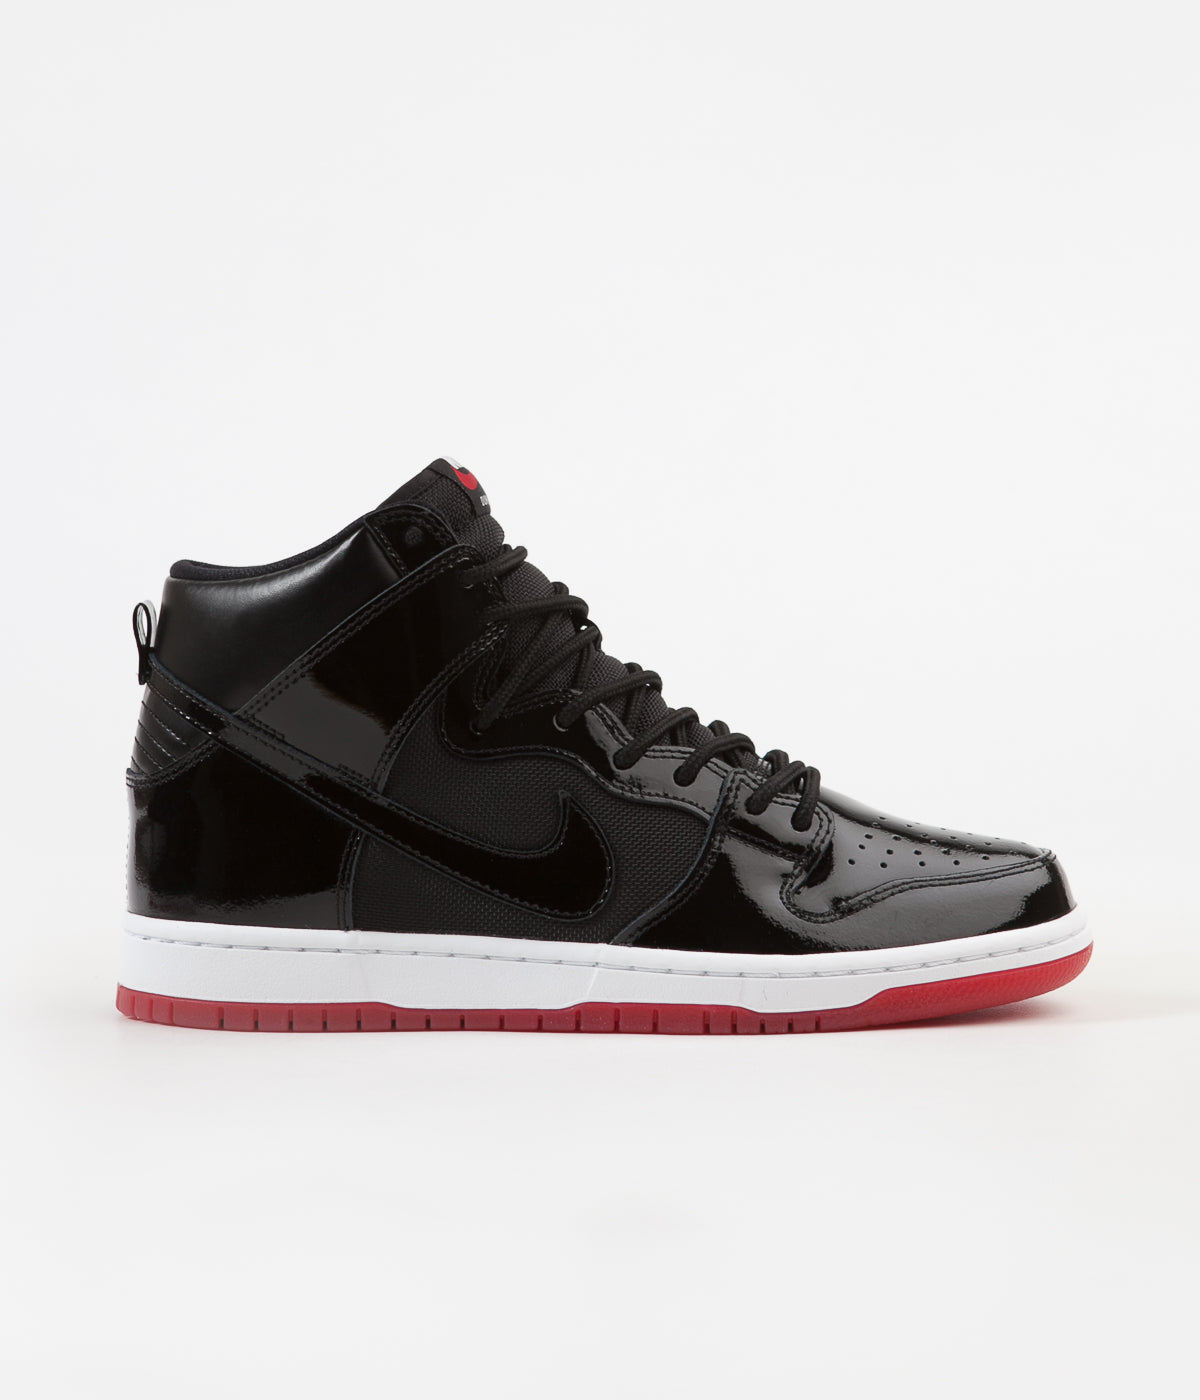 buy popular 7cf7c 04efd Nike SB Dunk High TR Shoes - Black / Black - White - Varsity ...